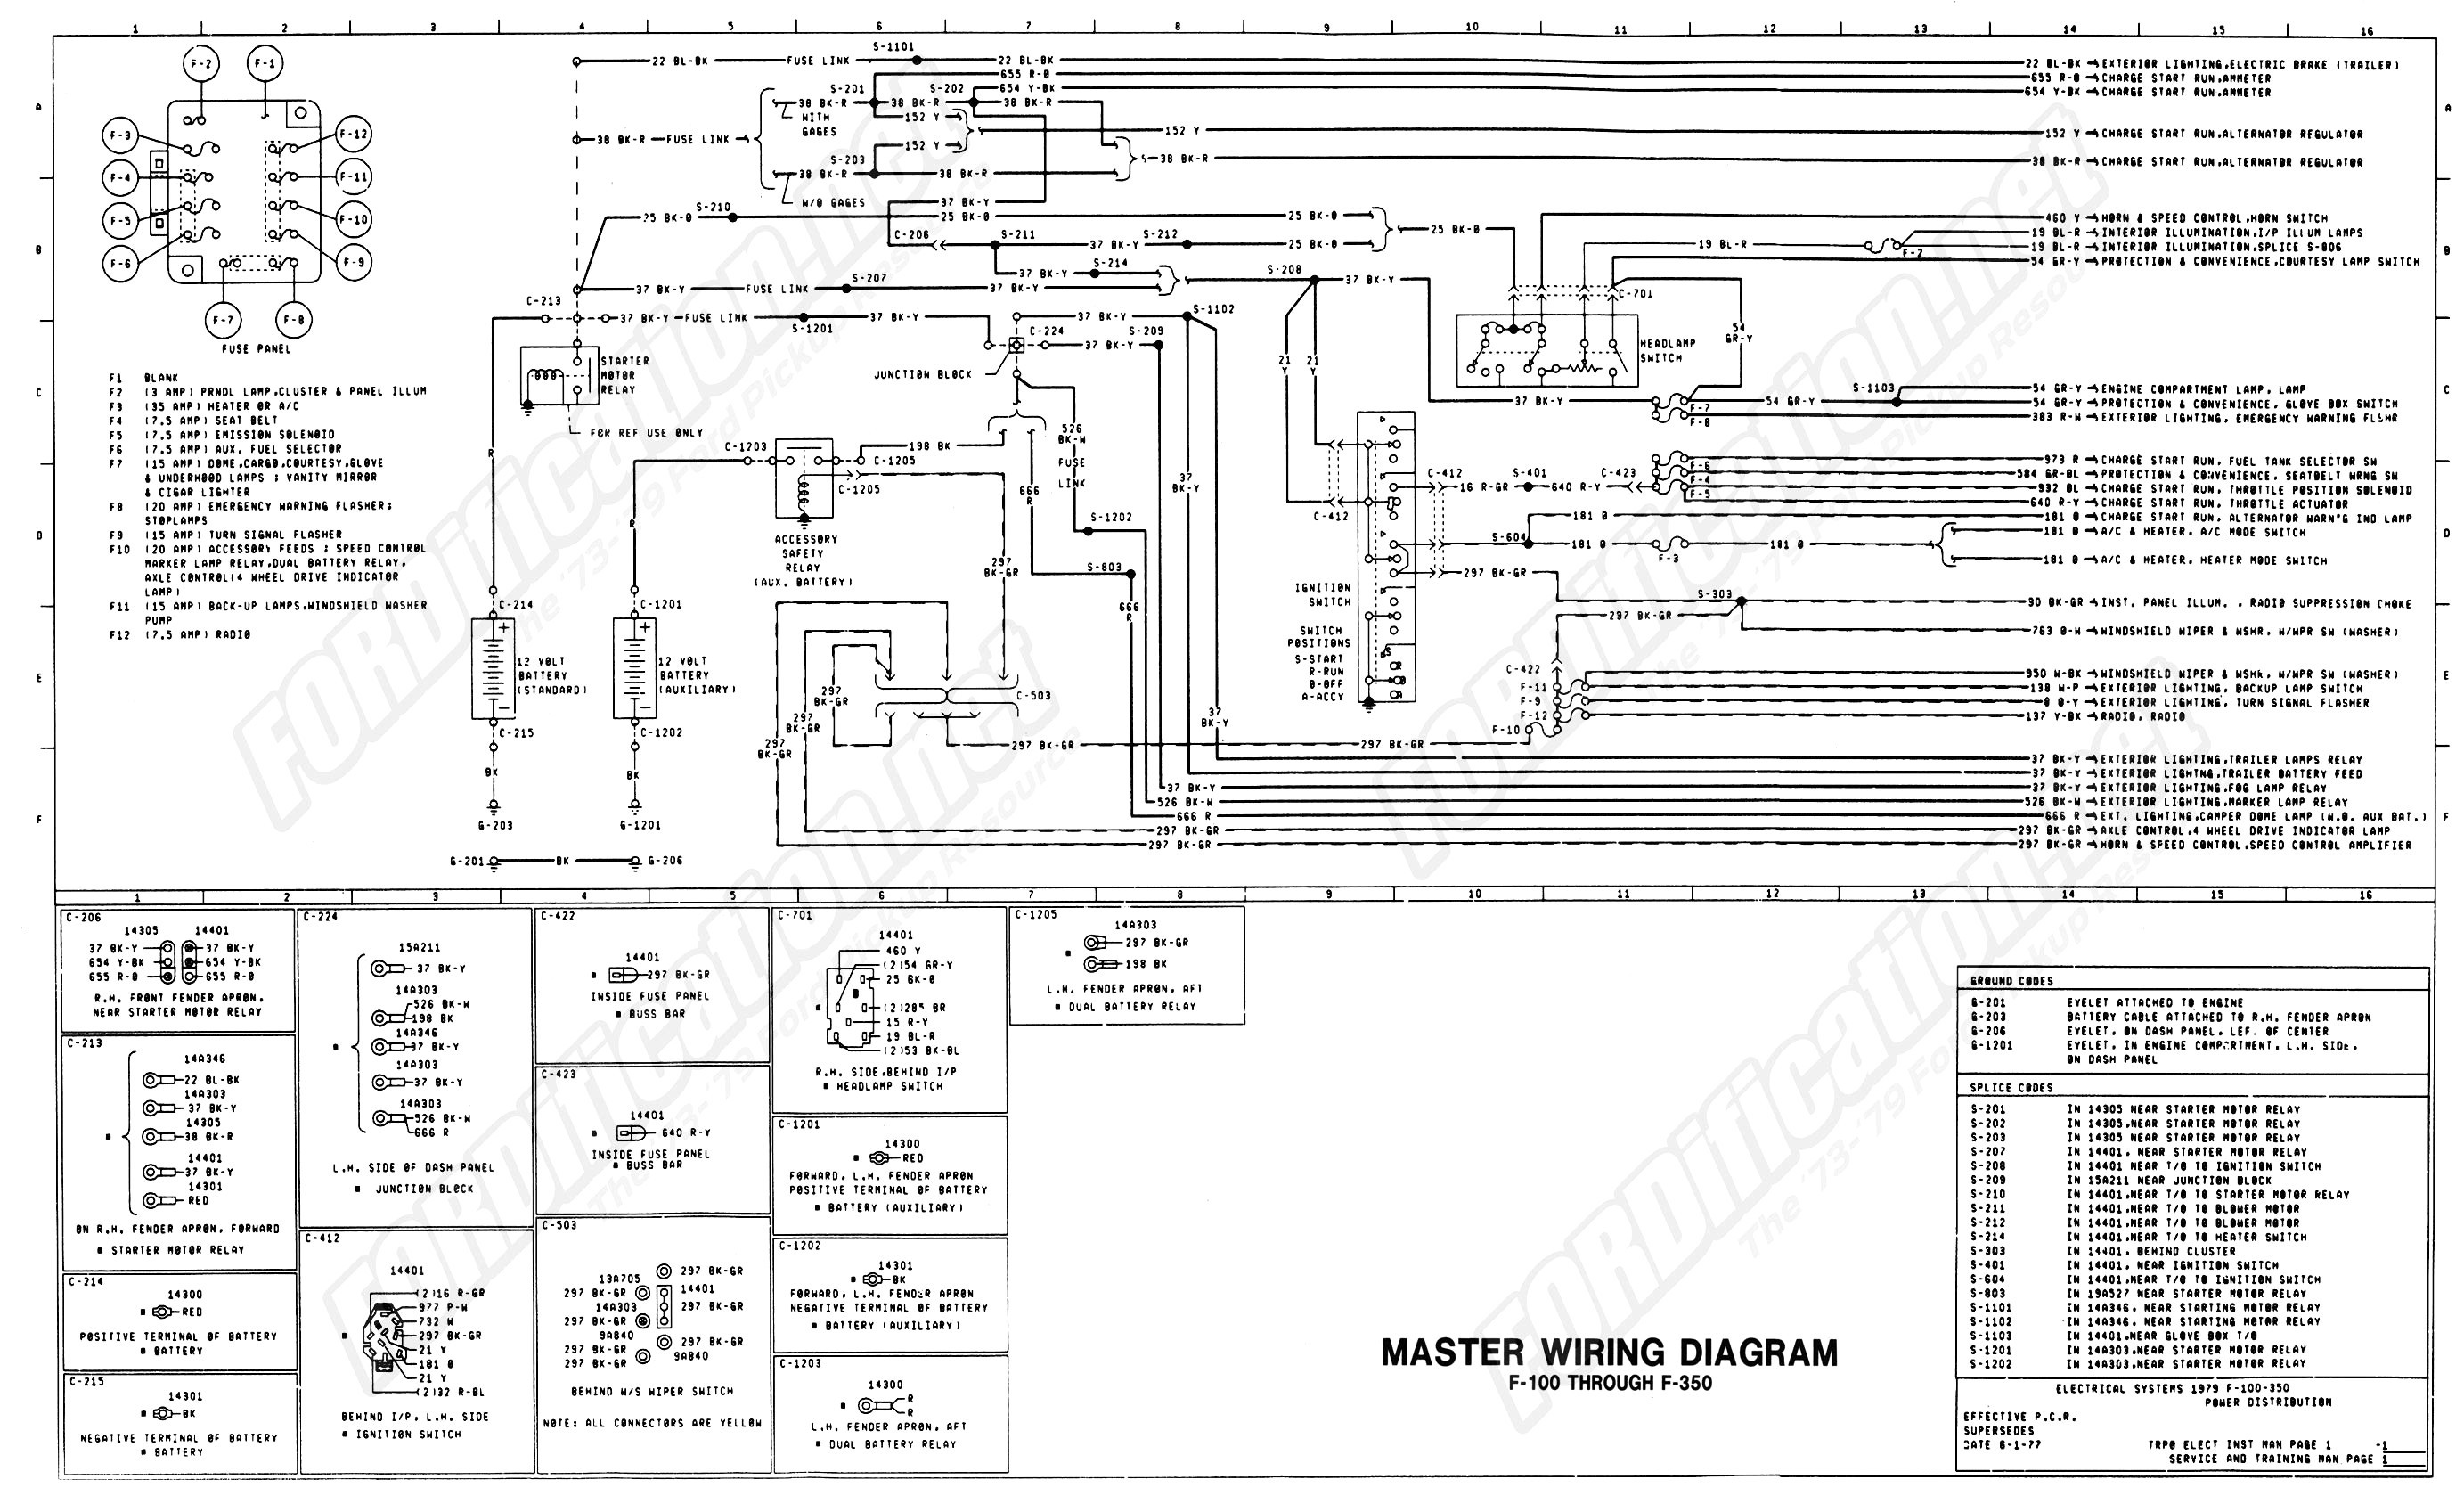 1977 Ford F 150 Wiring Diagram Voltage Regulator Schematics 84 Xr200r F150 Distributor Portal U2022 Rh Getcircuitdiagram Today